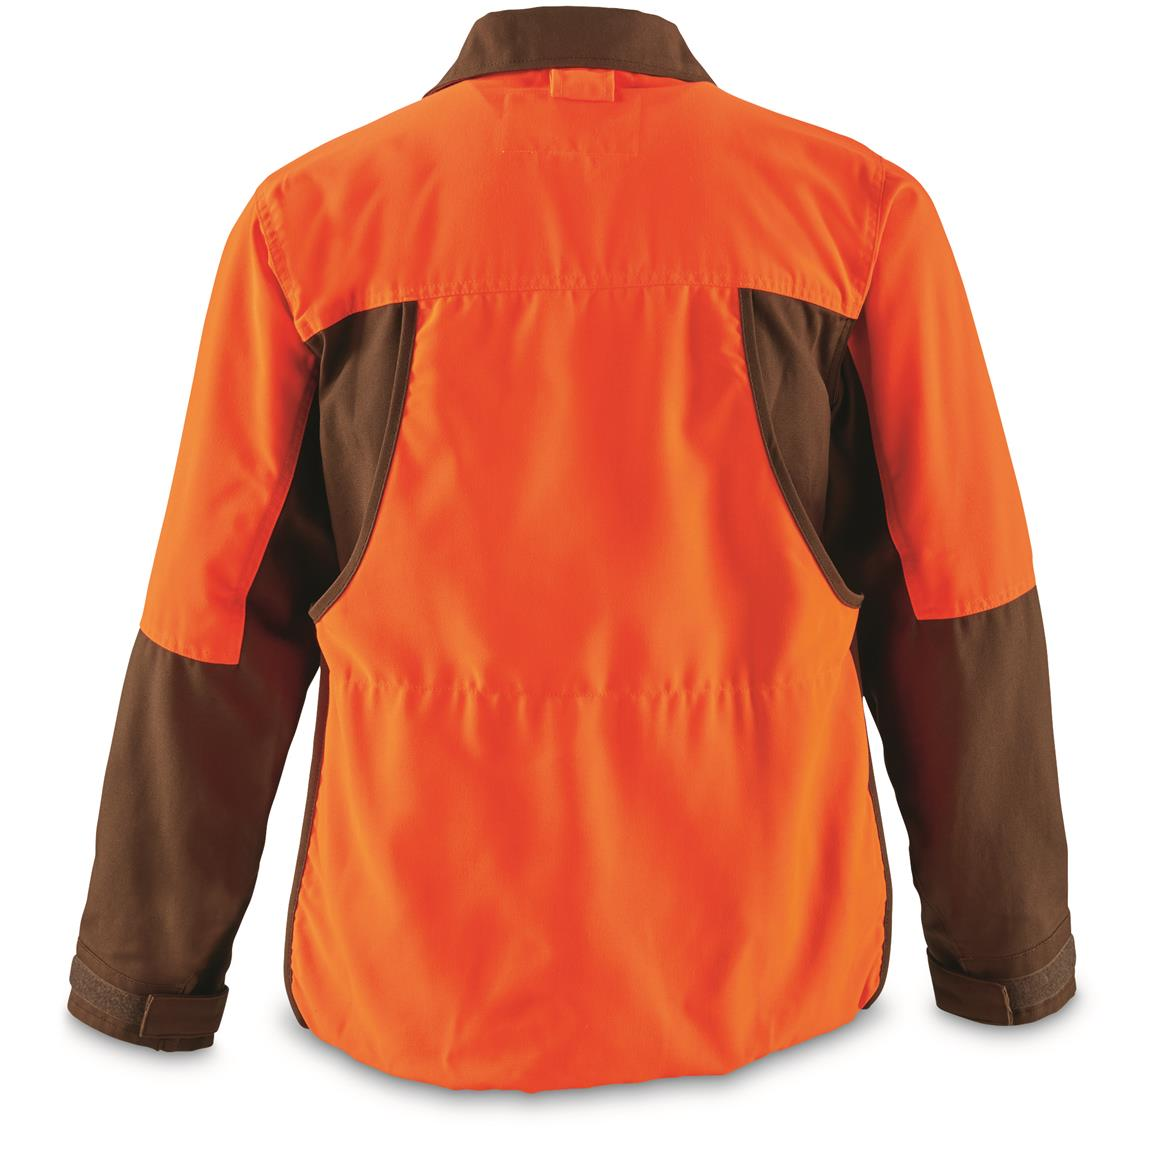 Brown / Orange Front and rear-loading nylon game pouches